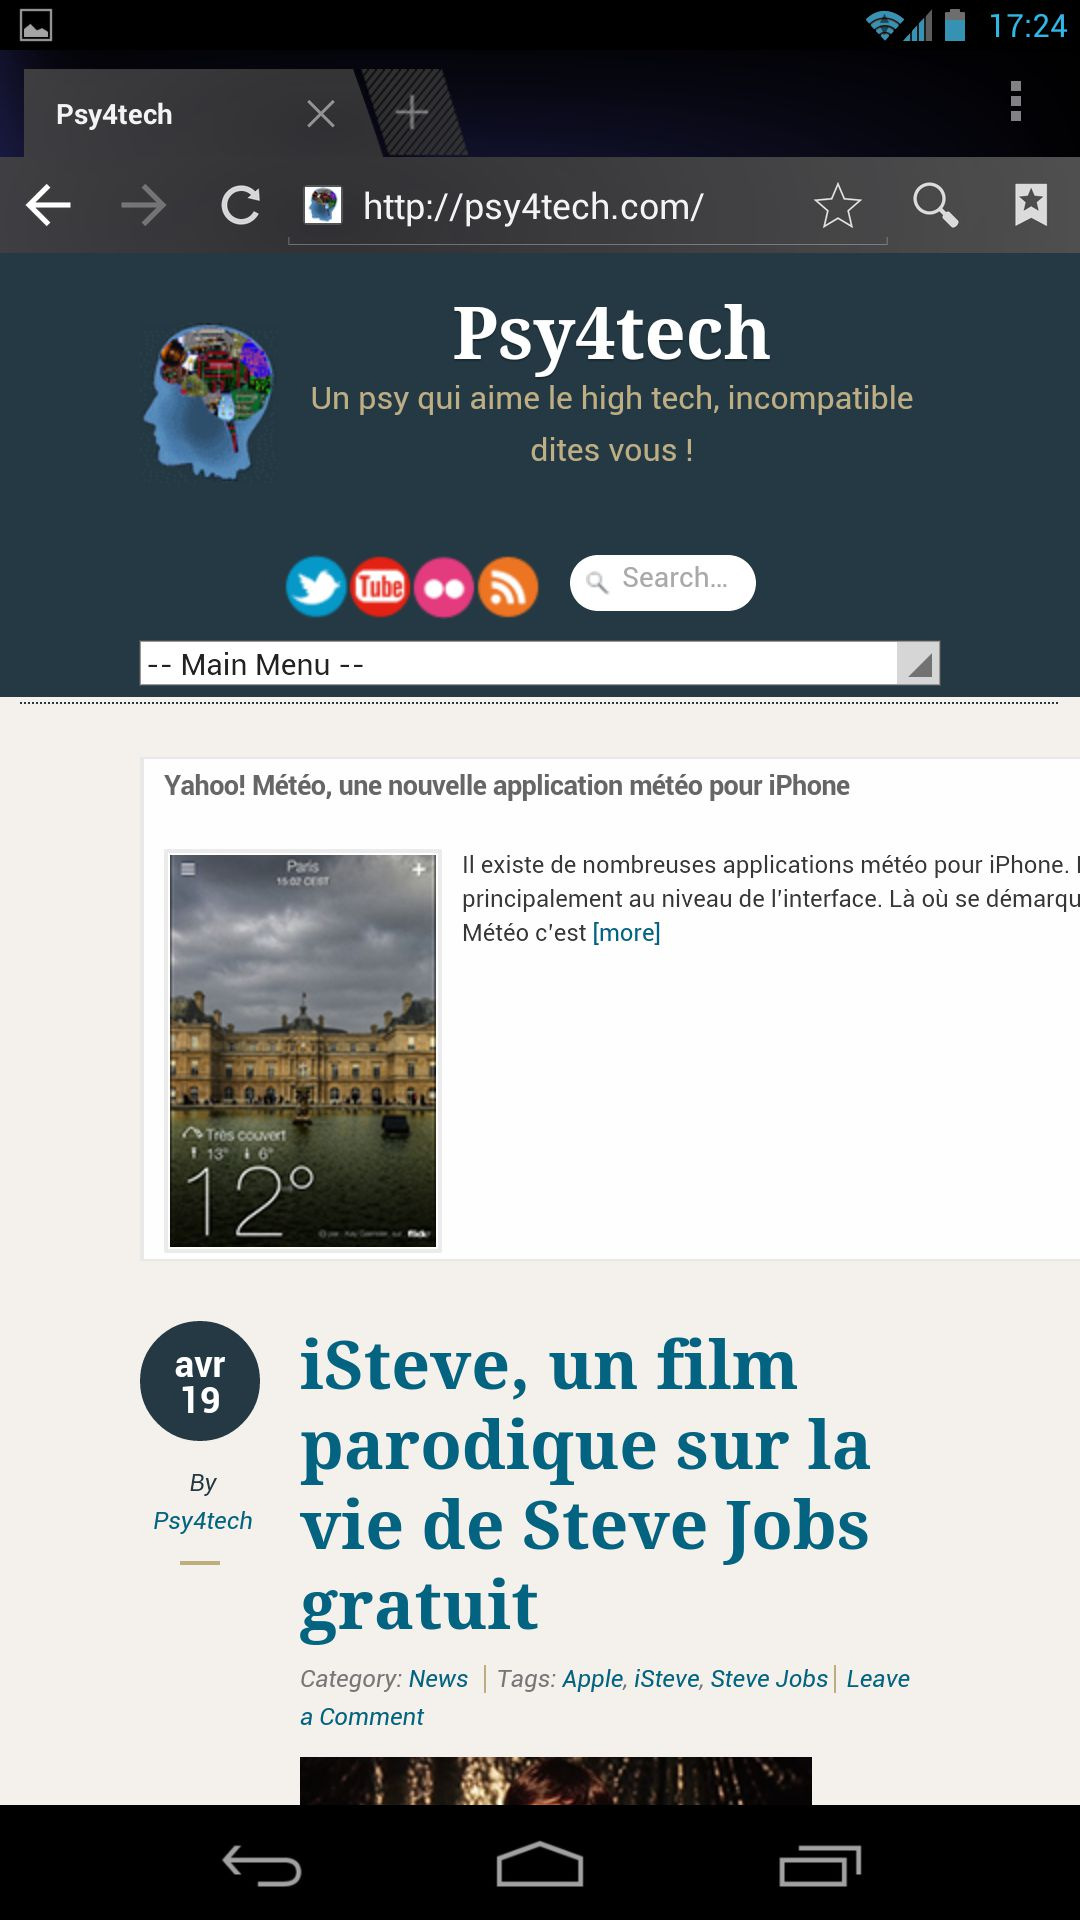 Screenshot_2013-04-22-17-24-38